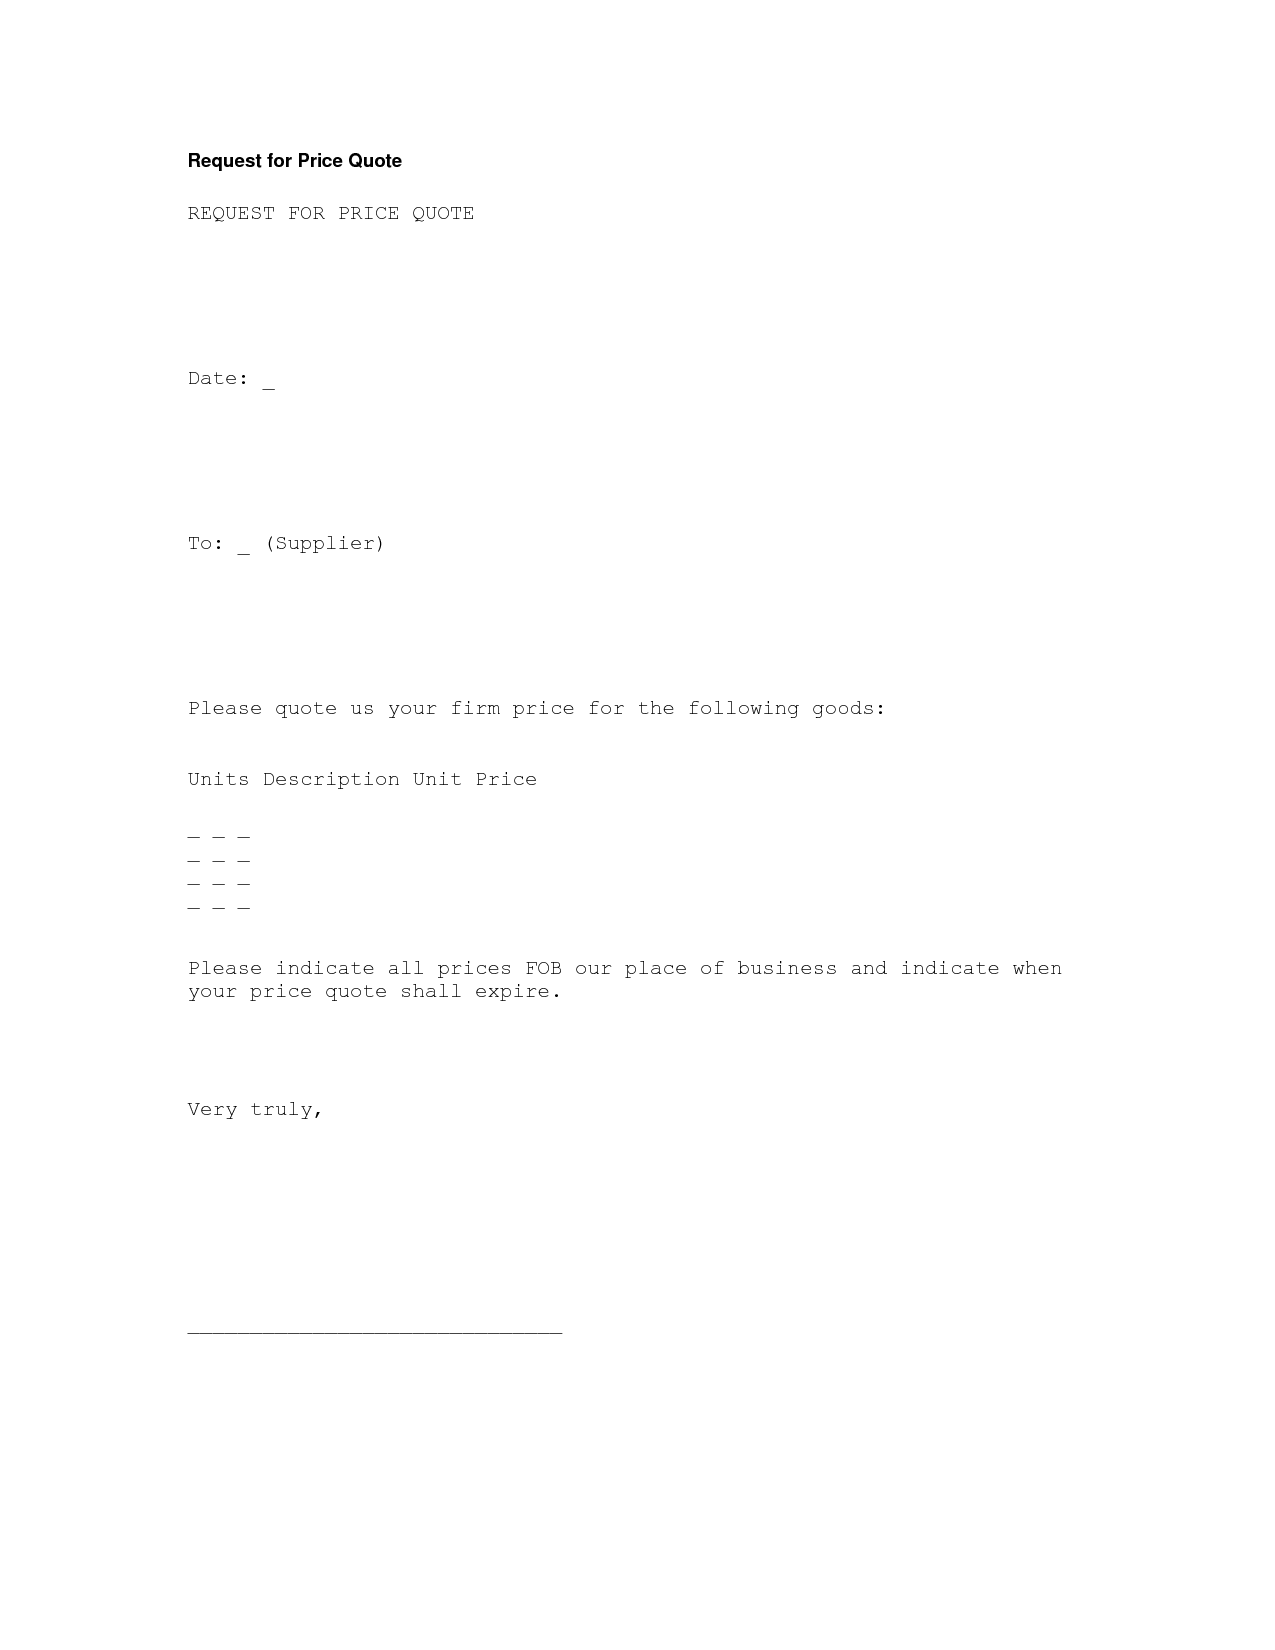 Enquiry letter sample for a quotation new enquiry letter format for quotation call letter format best of sample quotation request letter quotation call letter format best of sample request fresh quotation letter sample fresh spiritdancerdesigns Gallery